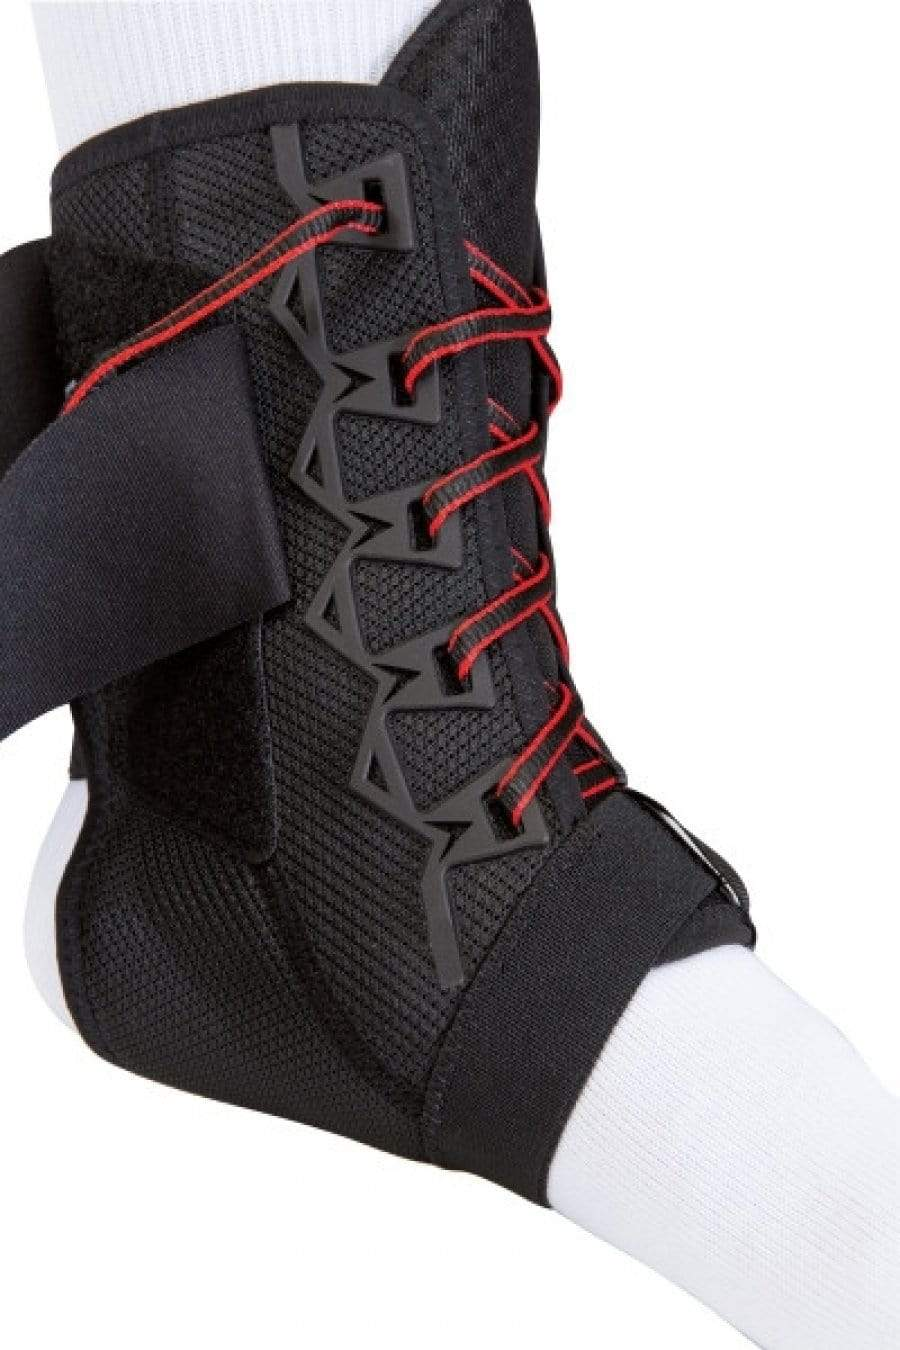 MUE488 THE ONE PREMIUM ANKLE BRACE LACE UP WITH FIGURE 8 STRAPPING